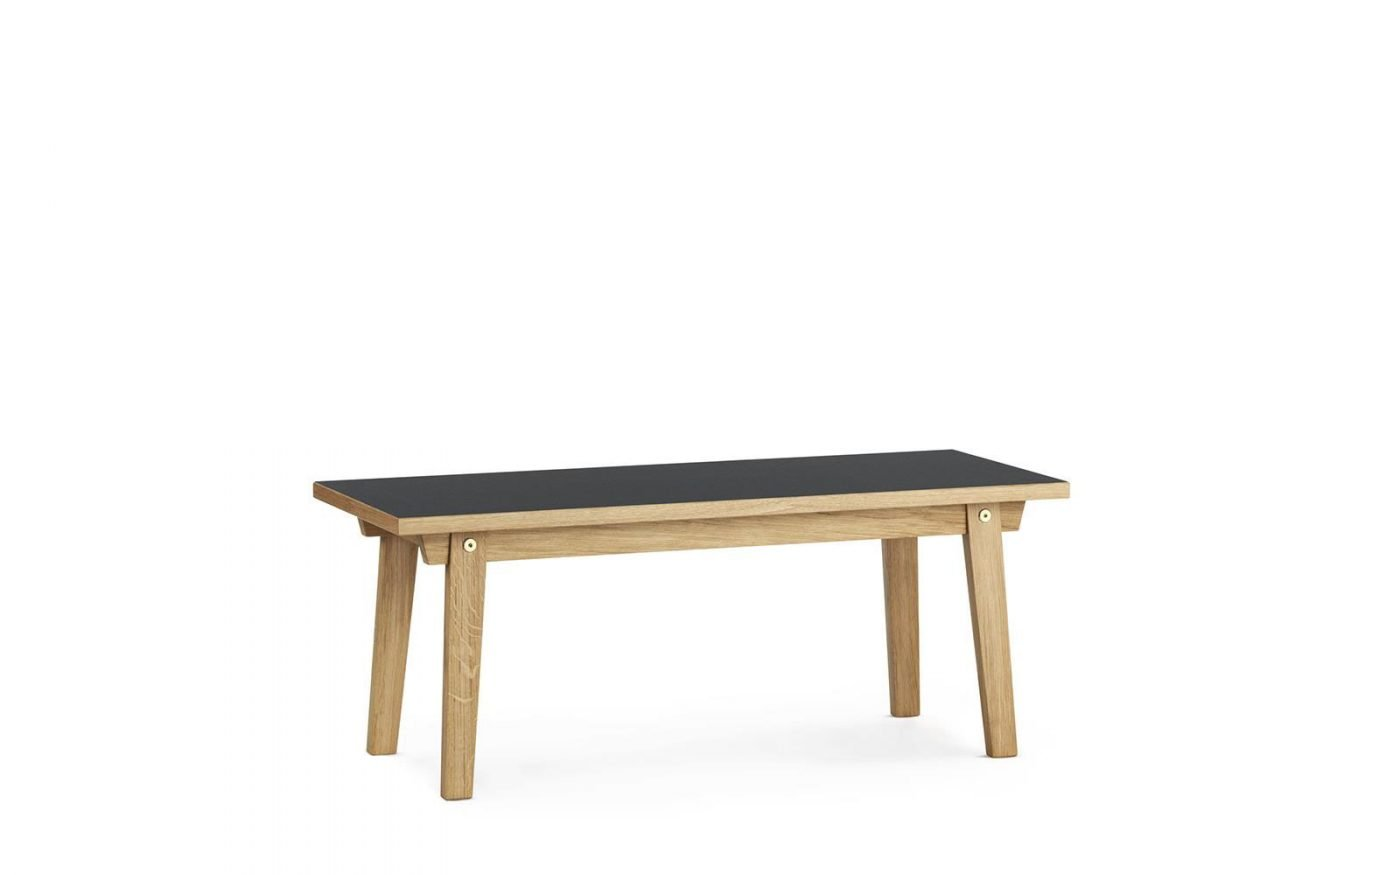 slice-Coffee-table-normann-copenhagen-table-black